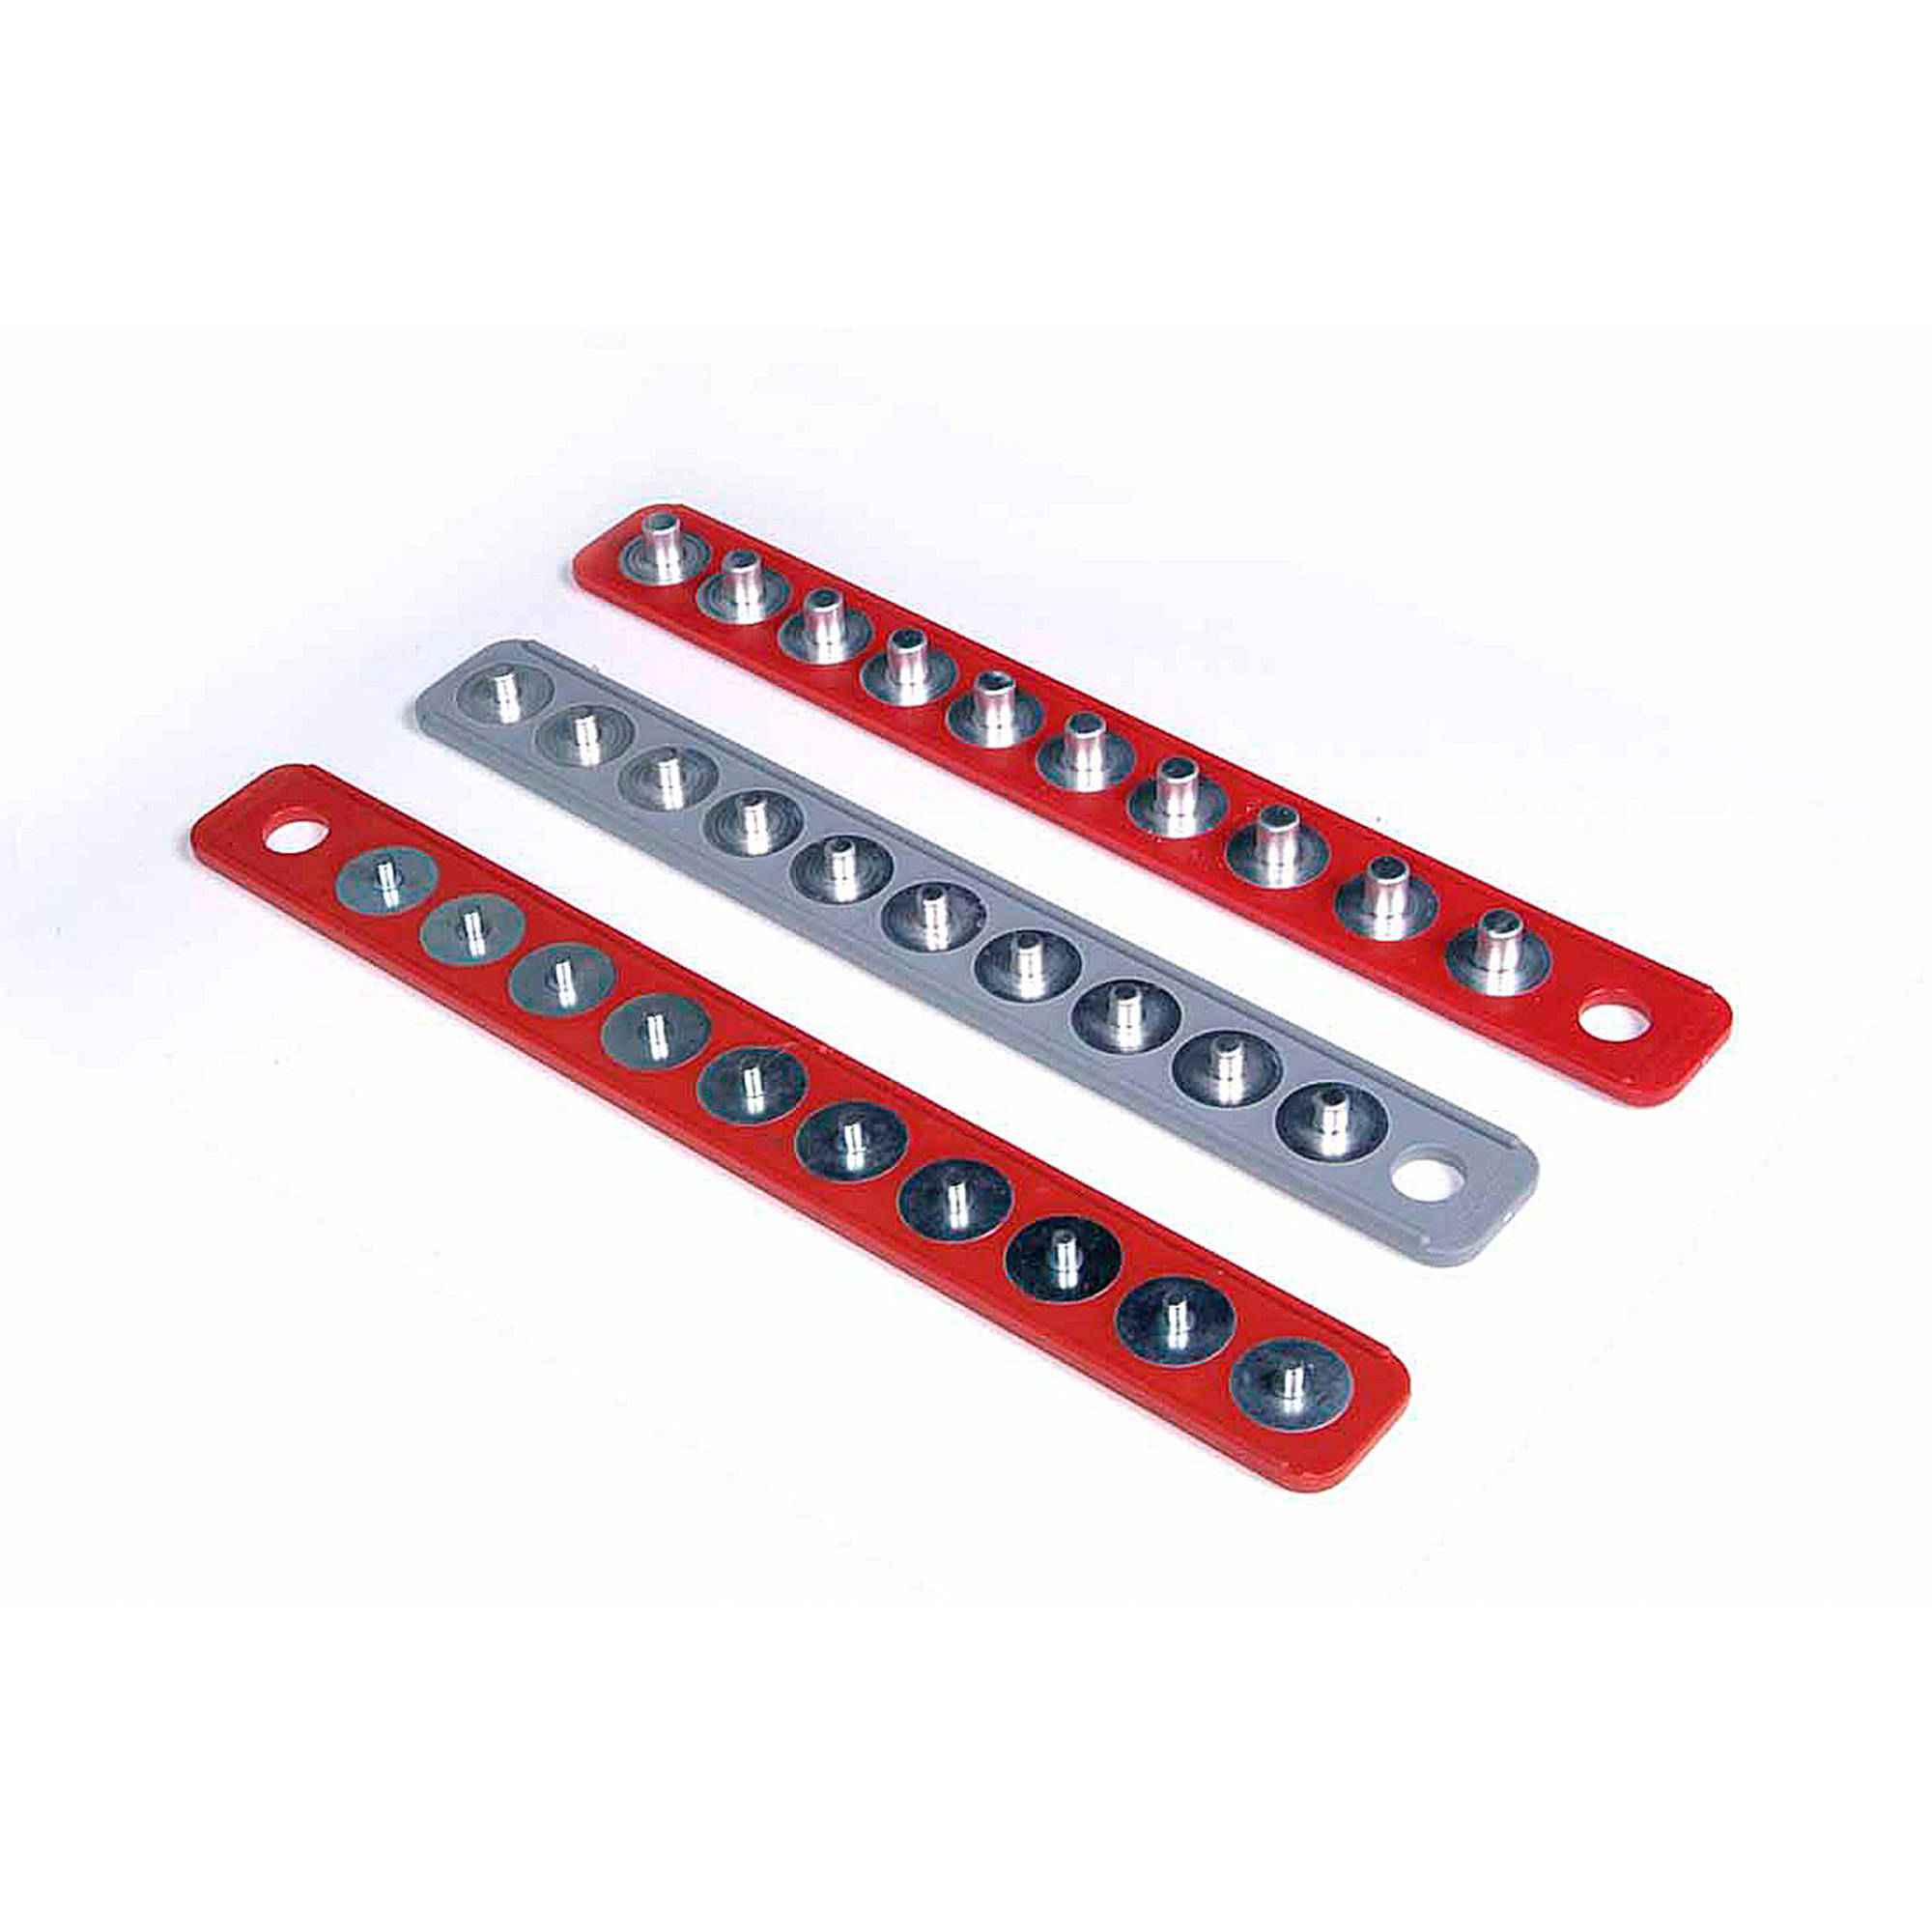 "MagClip 1/4"" Drive 16-5/8"" Red, 1/2"" Drive 16-5/8"" Red, 3/8"" Drive 15-5/8"" Gray Magnetic Socket Holder Strip Assortment"